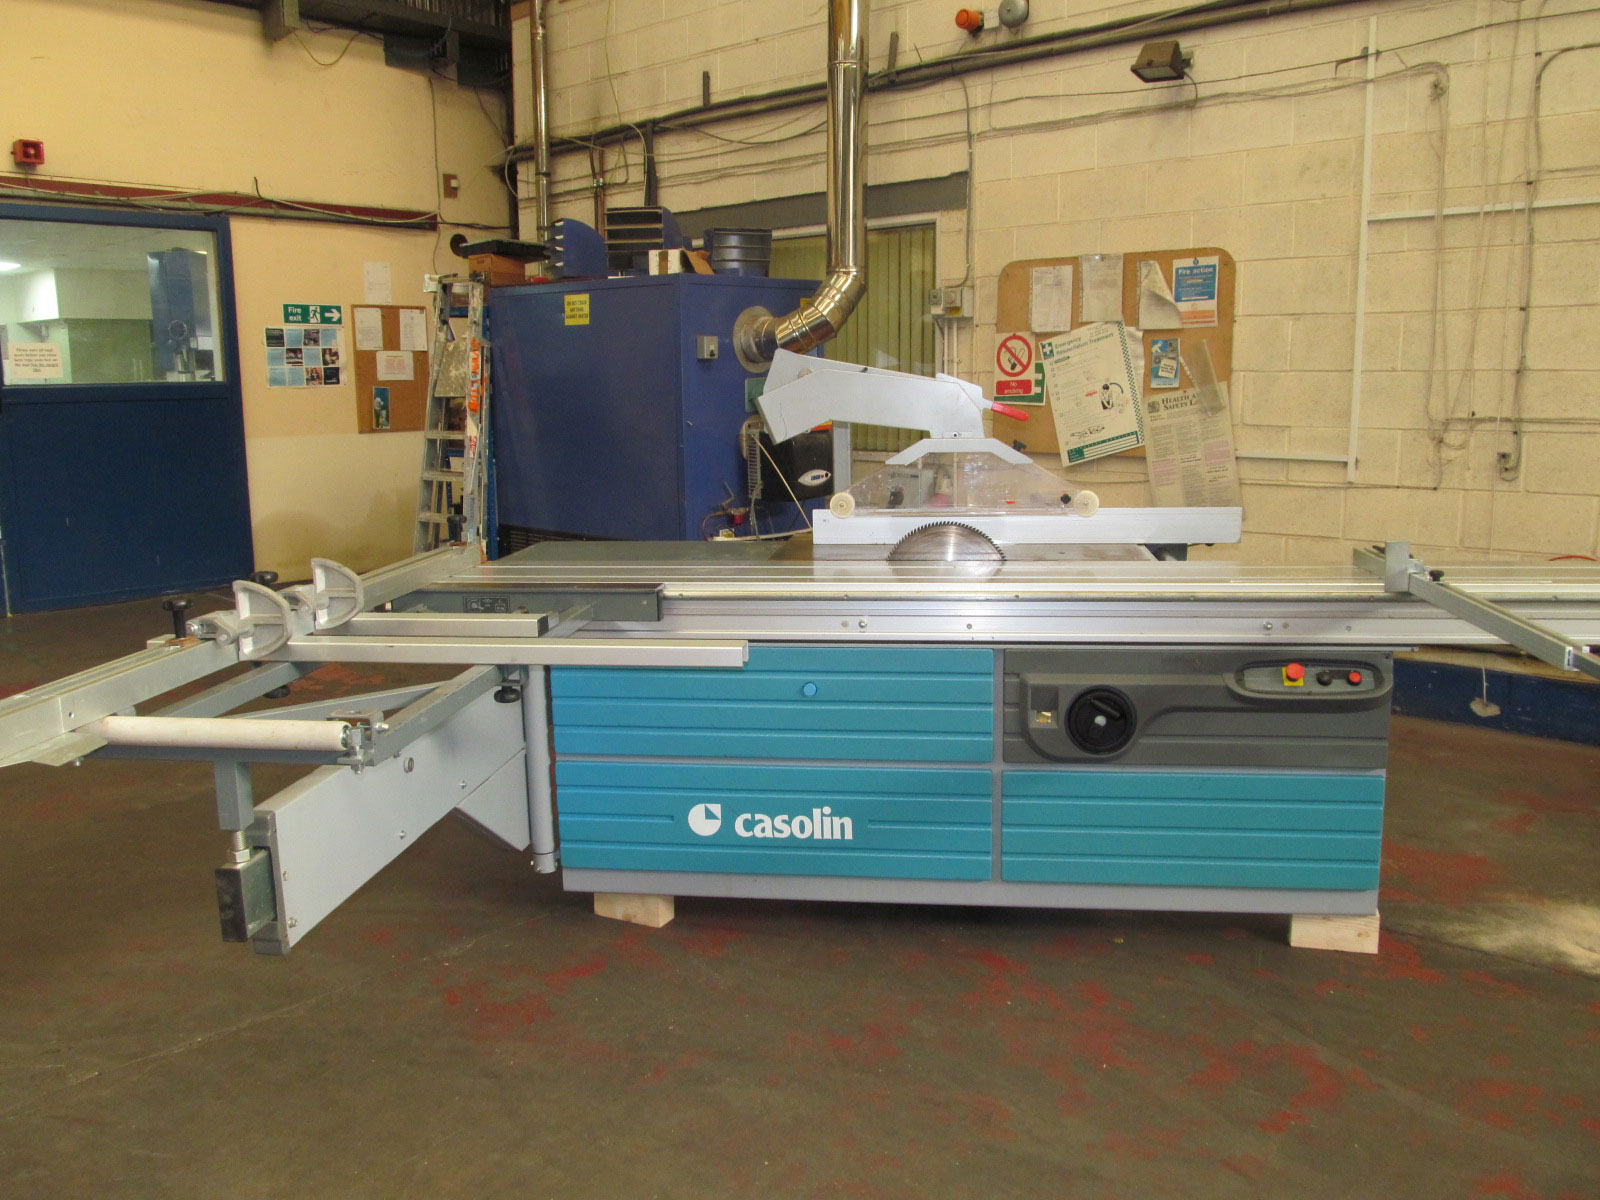 Casolin SE400 3200mm panelsaw